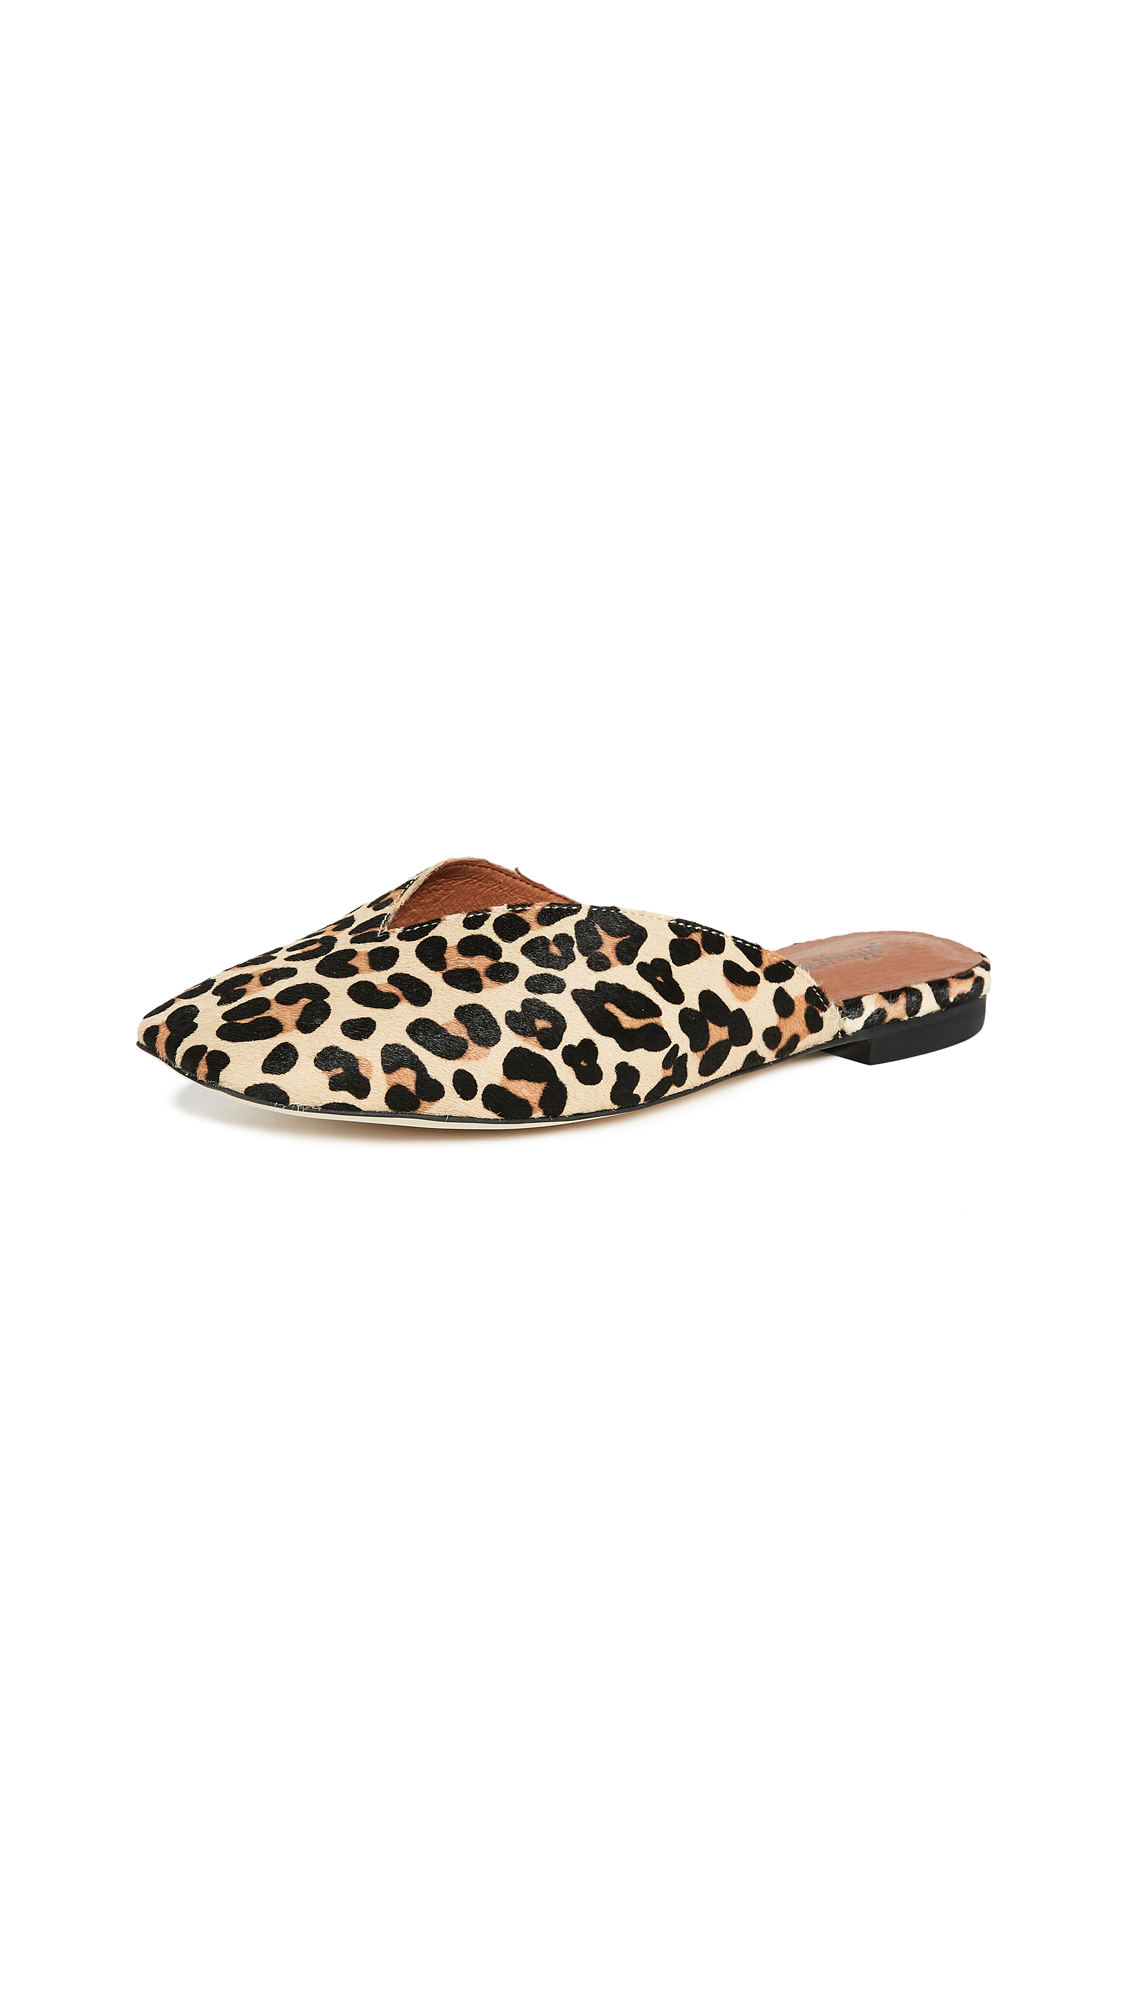 Jeffrey Campbell Grande Square Toe Mules - Tan/Cheetah